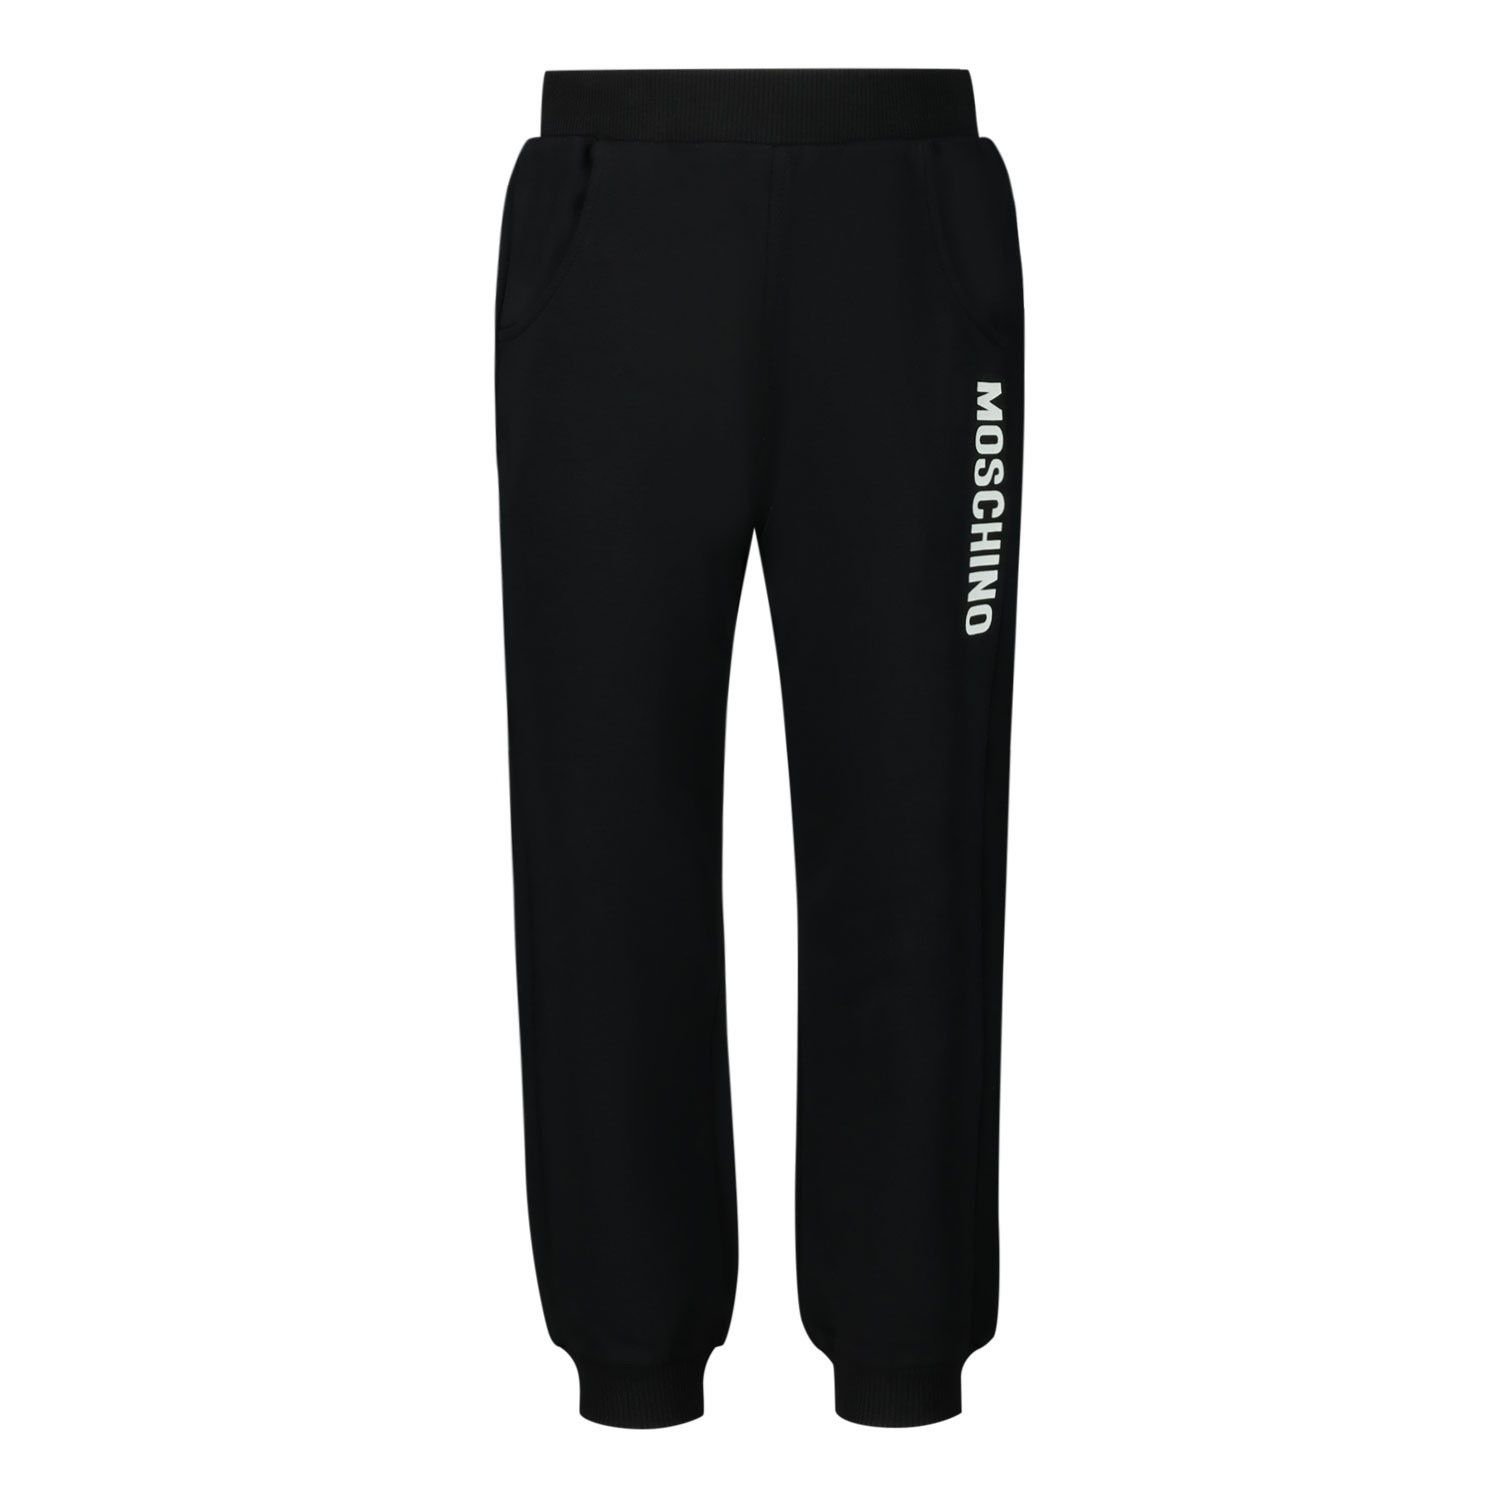 Picture of Moschino MRP023 baby pants black